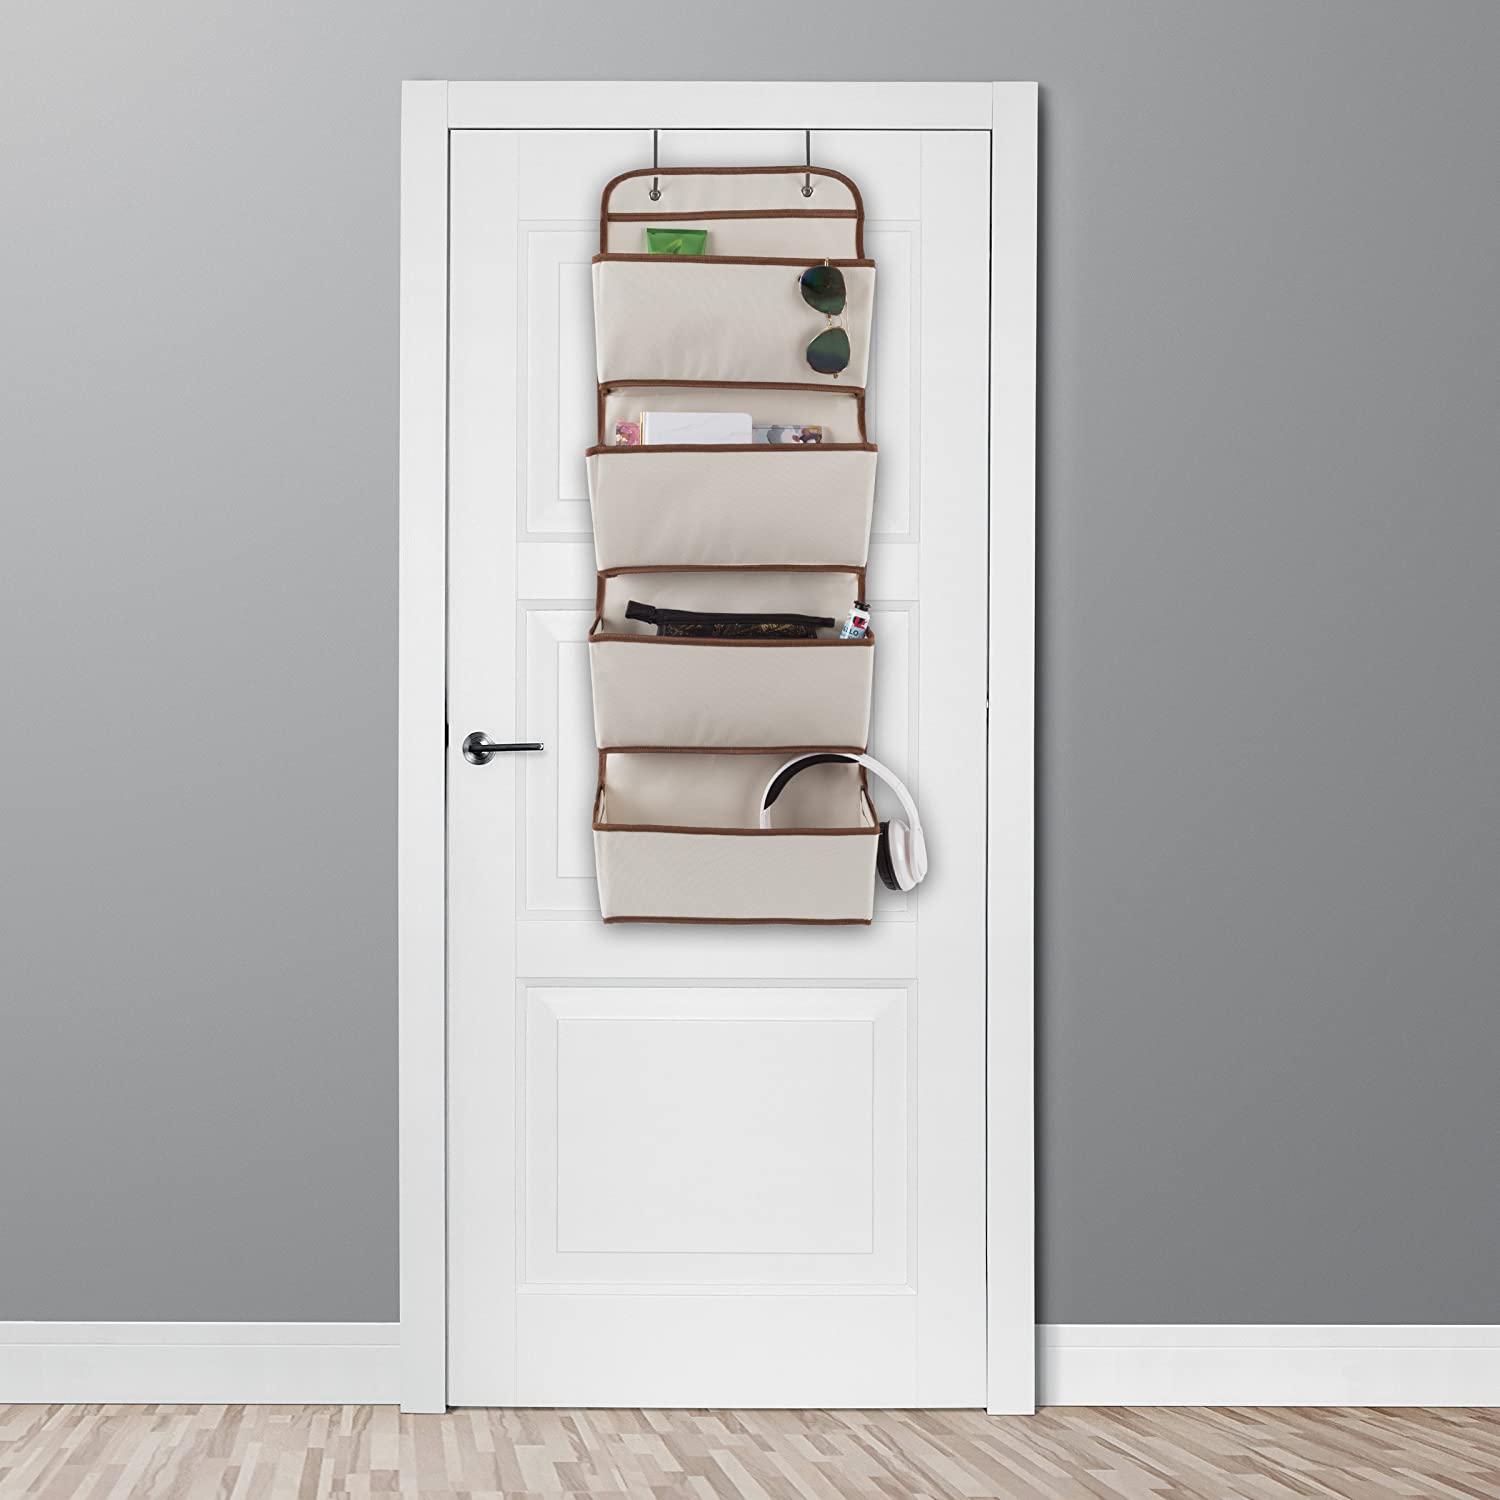 Lavish Home Over the Door organizer-4ポケットHanging Storage保存スペースのクローゼット、寝室、office-store Books、玩具、クラフトSupplies and More B07D7QDSKK 14897